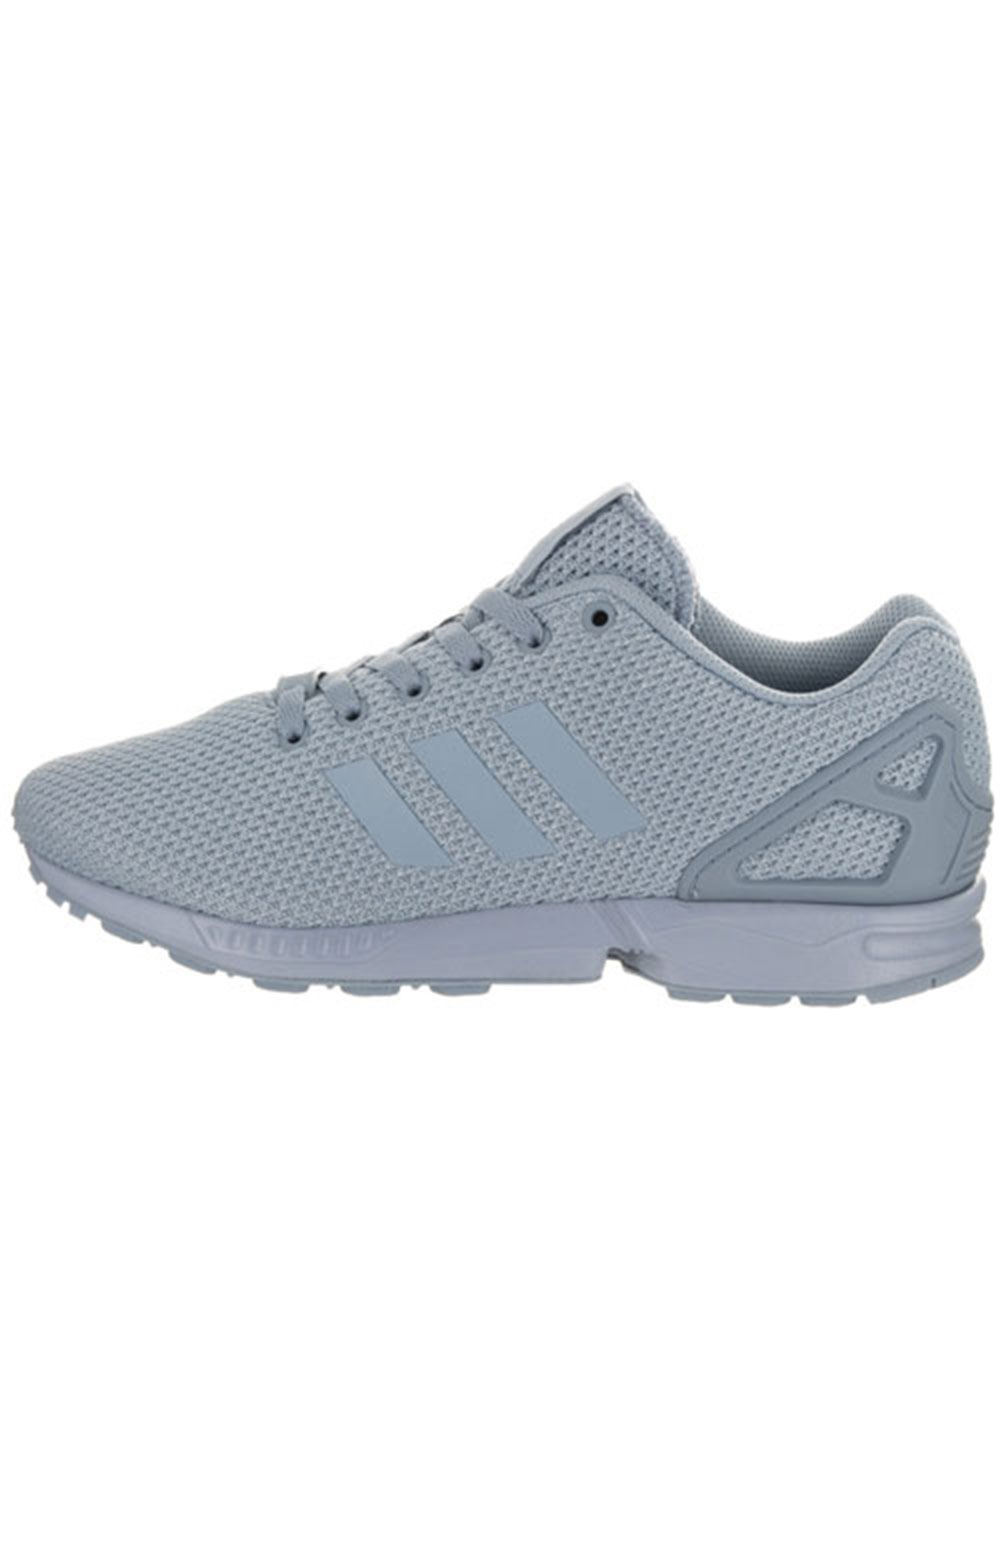 (BB2160) ZX Flux Shoe - Tactile Blue 3